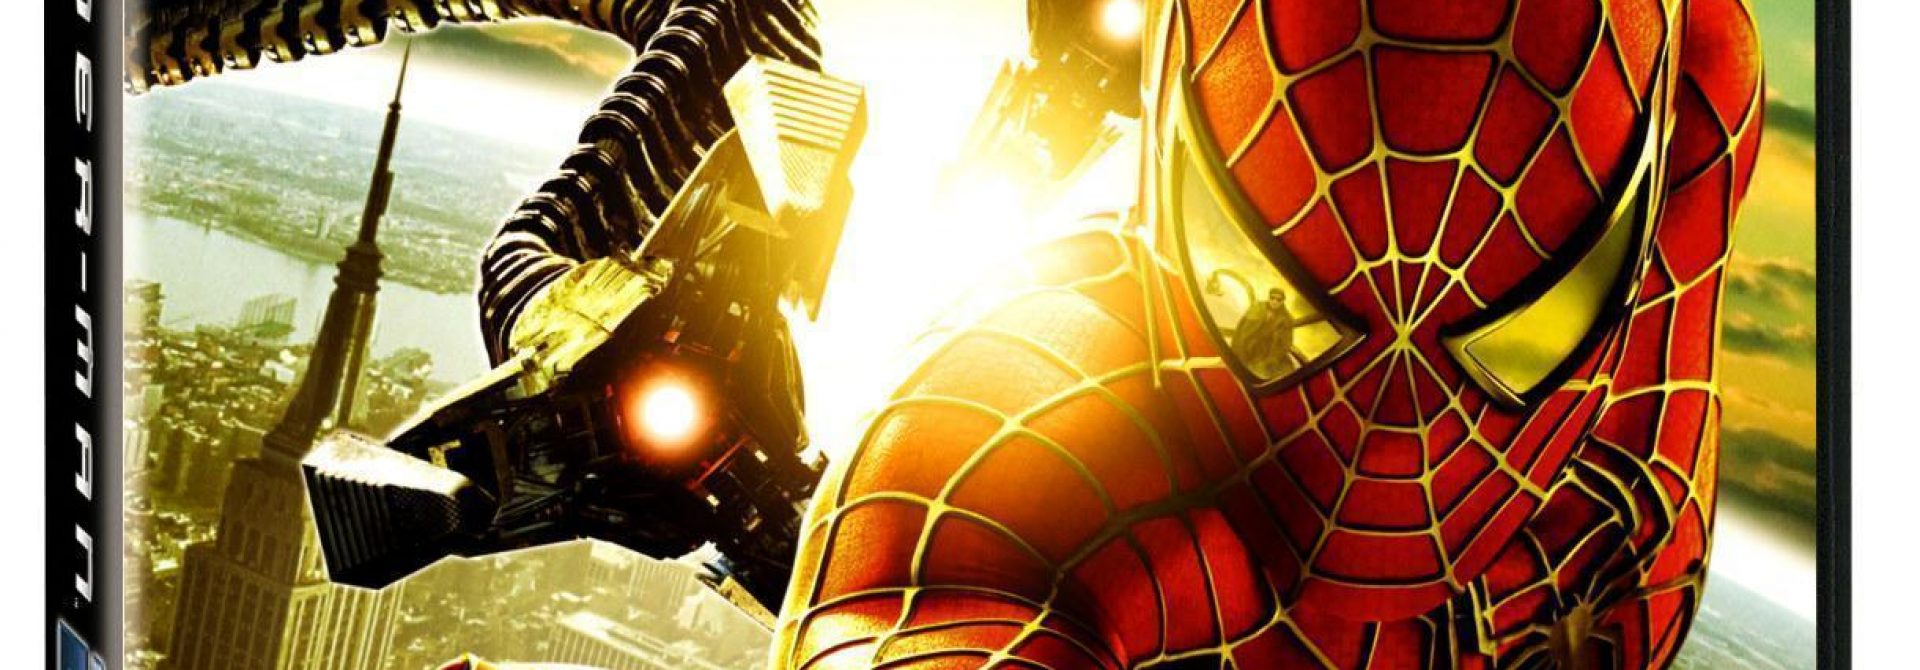 """Spider-Man 2.1"" Two-Disc DVD Review"